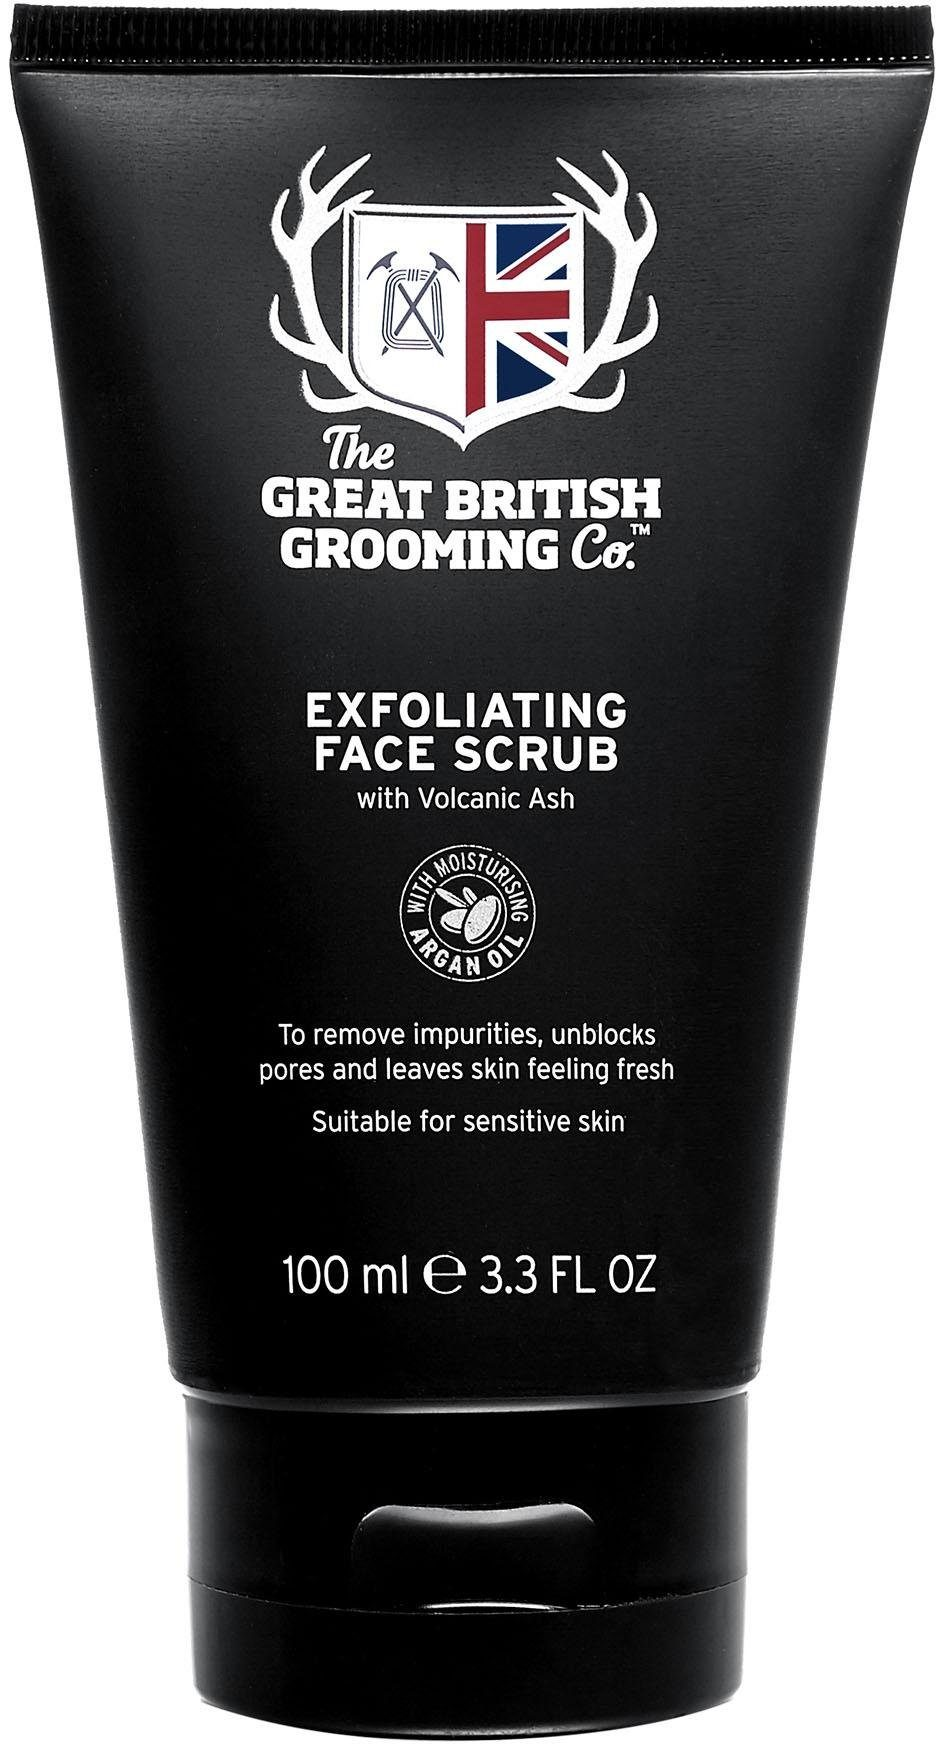 The Great British Grooming Co., »Exfoliating Face Scrub«, Gesichtspeeling